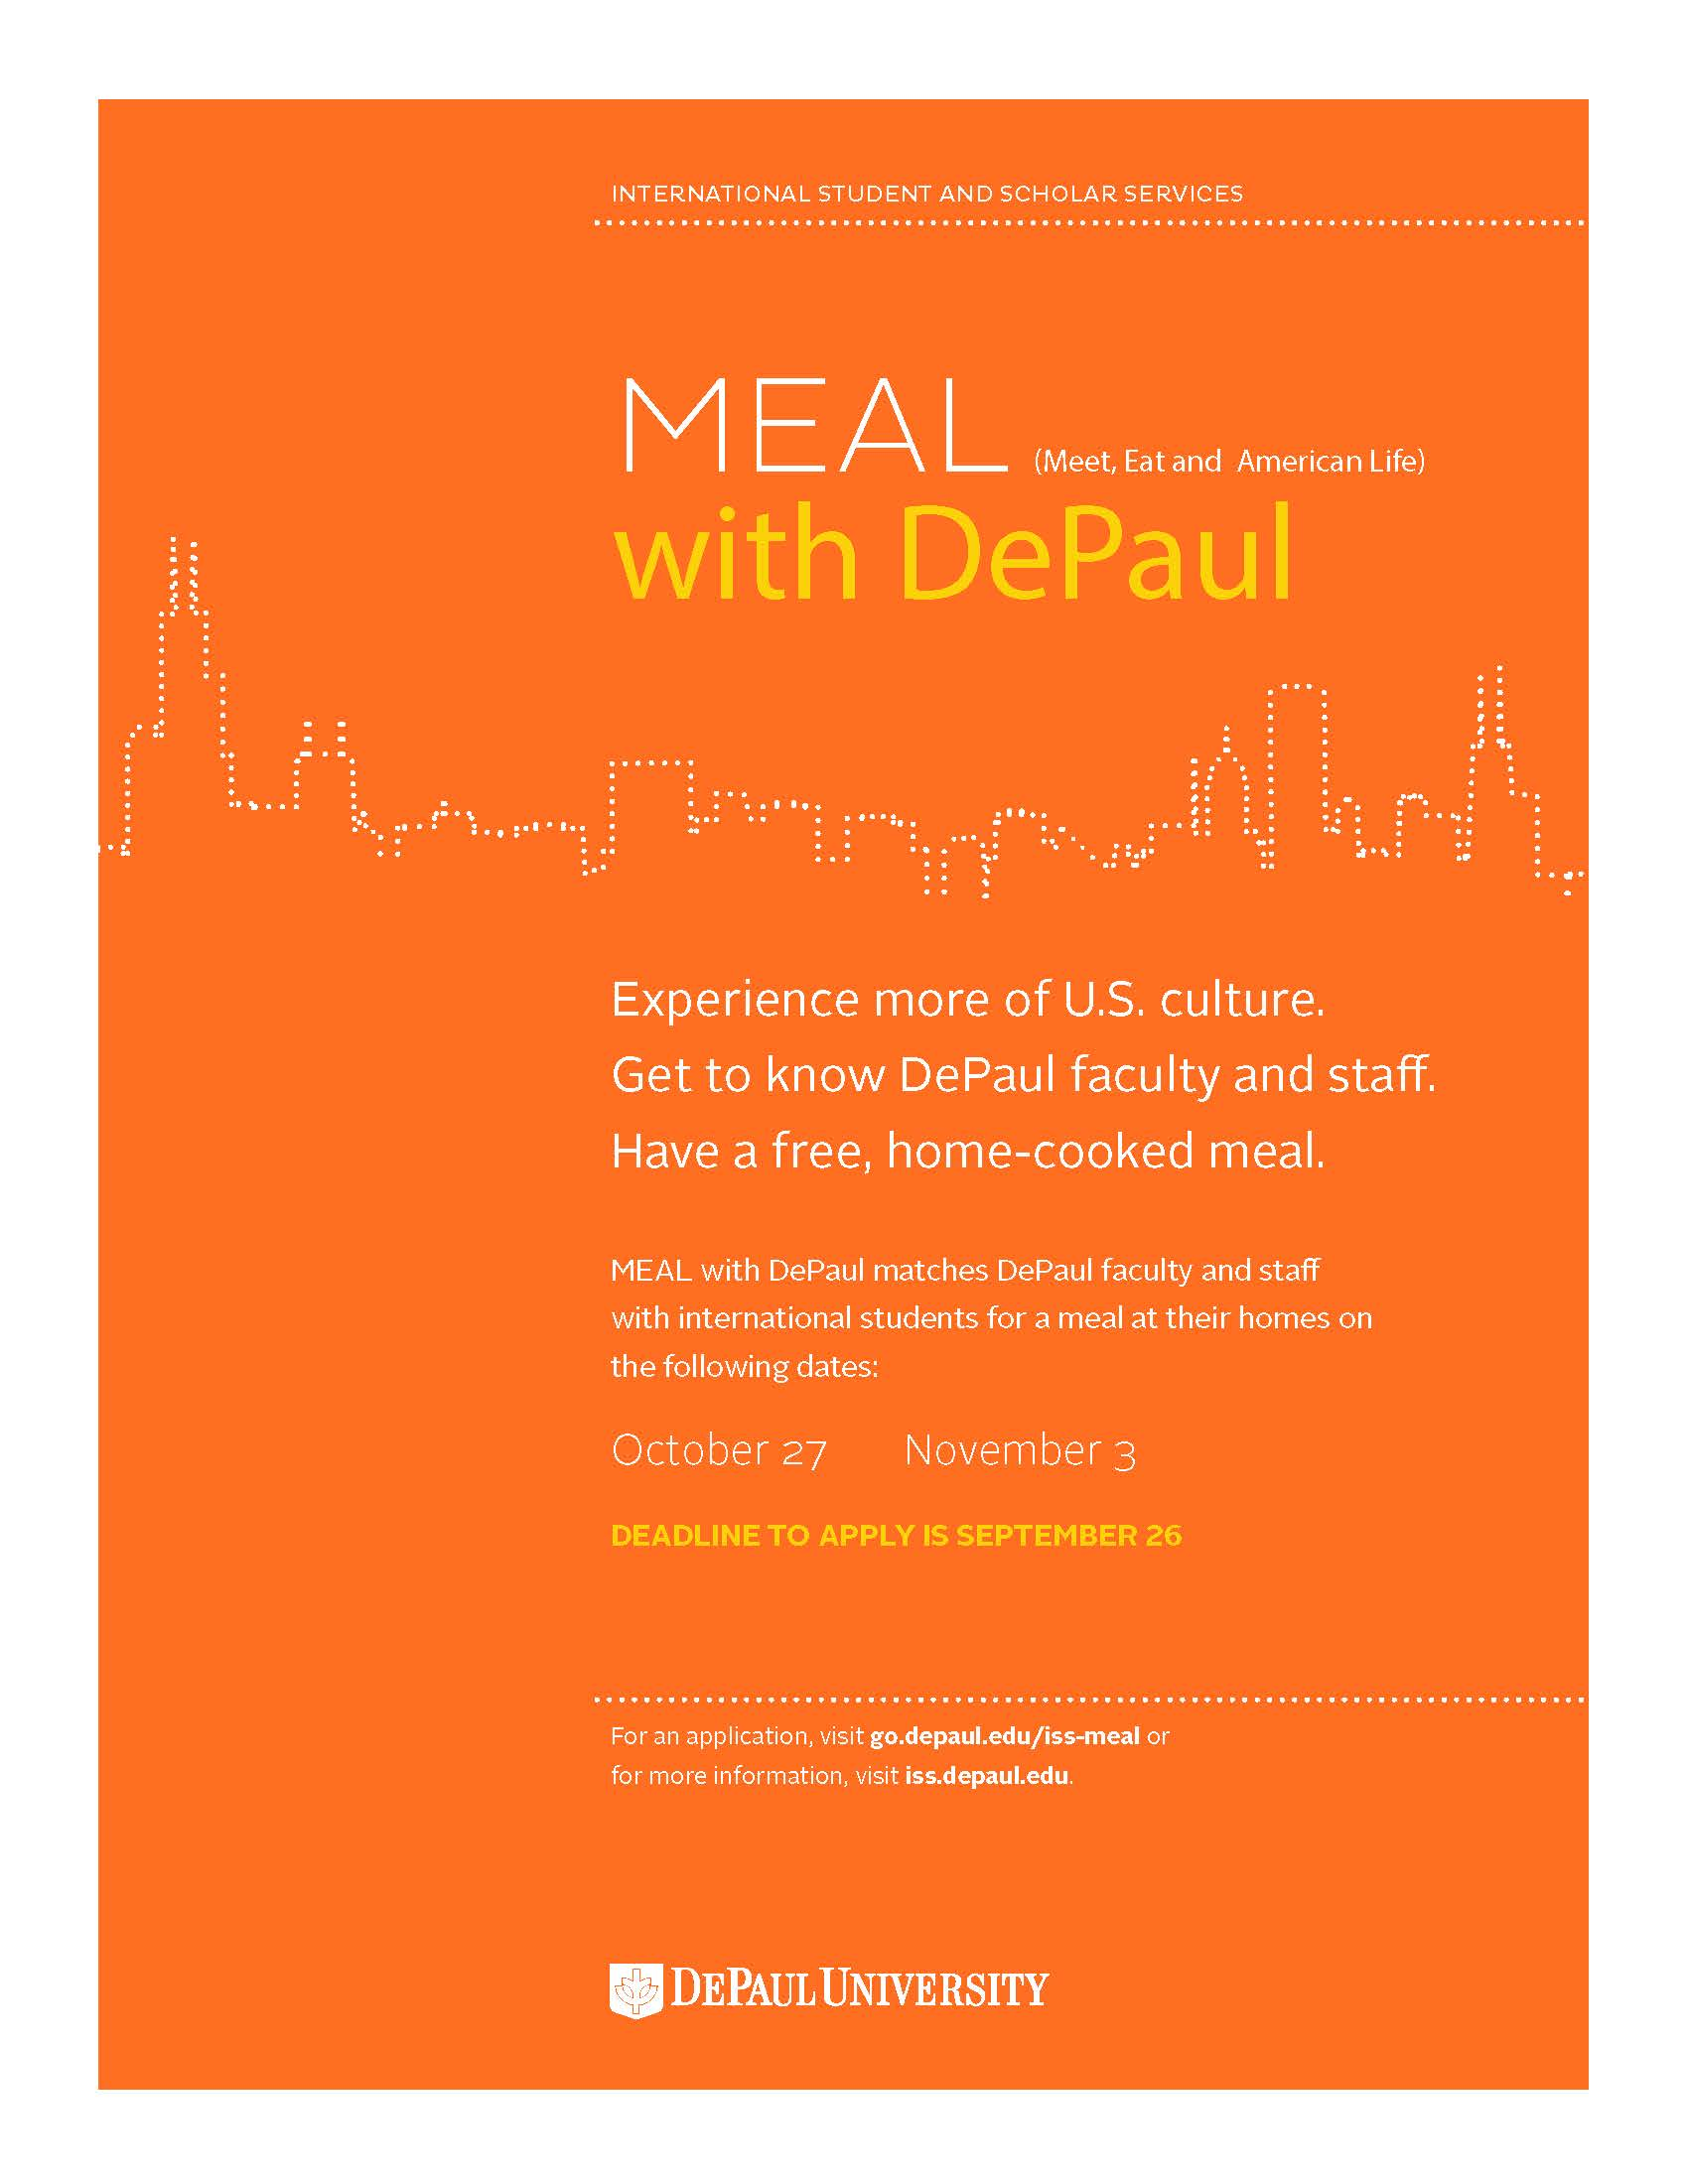 MEAL with DePaul 2018-19